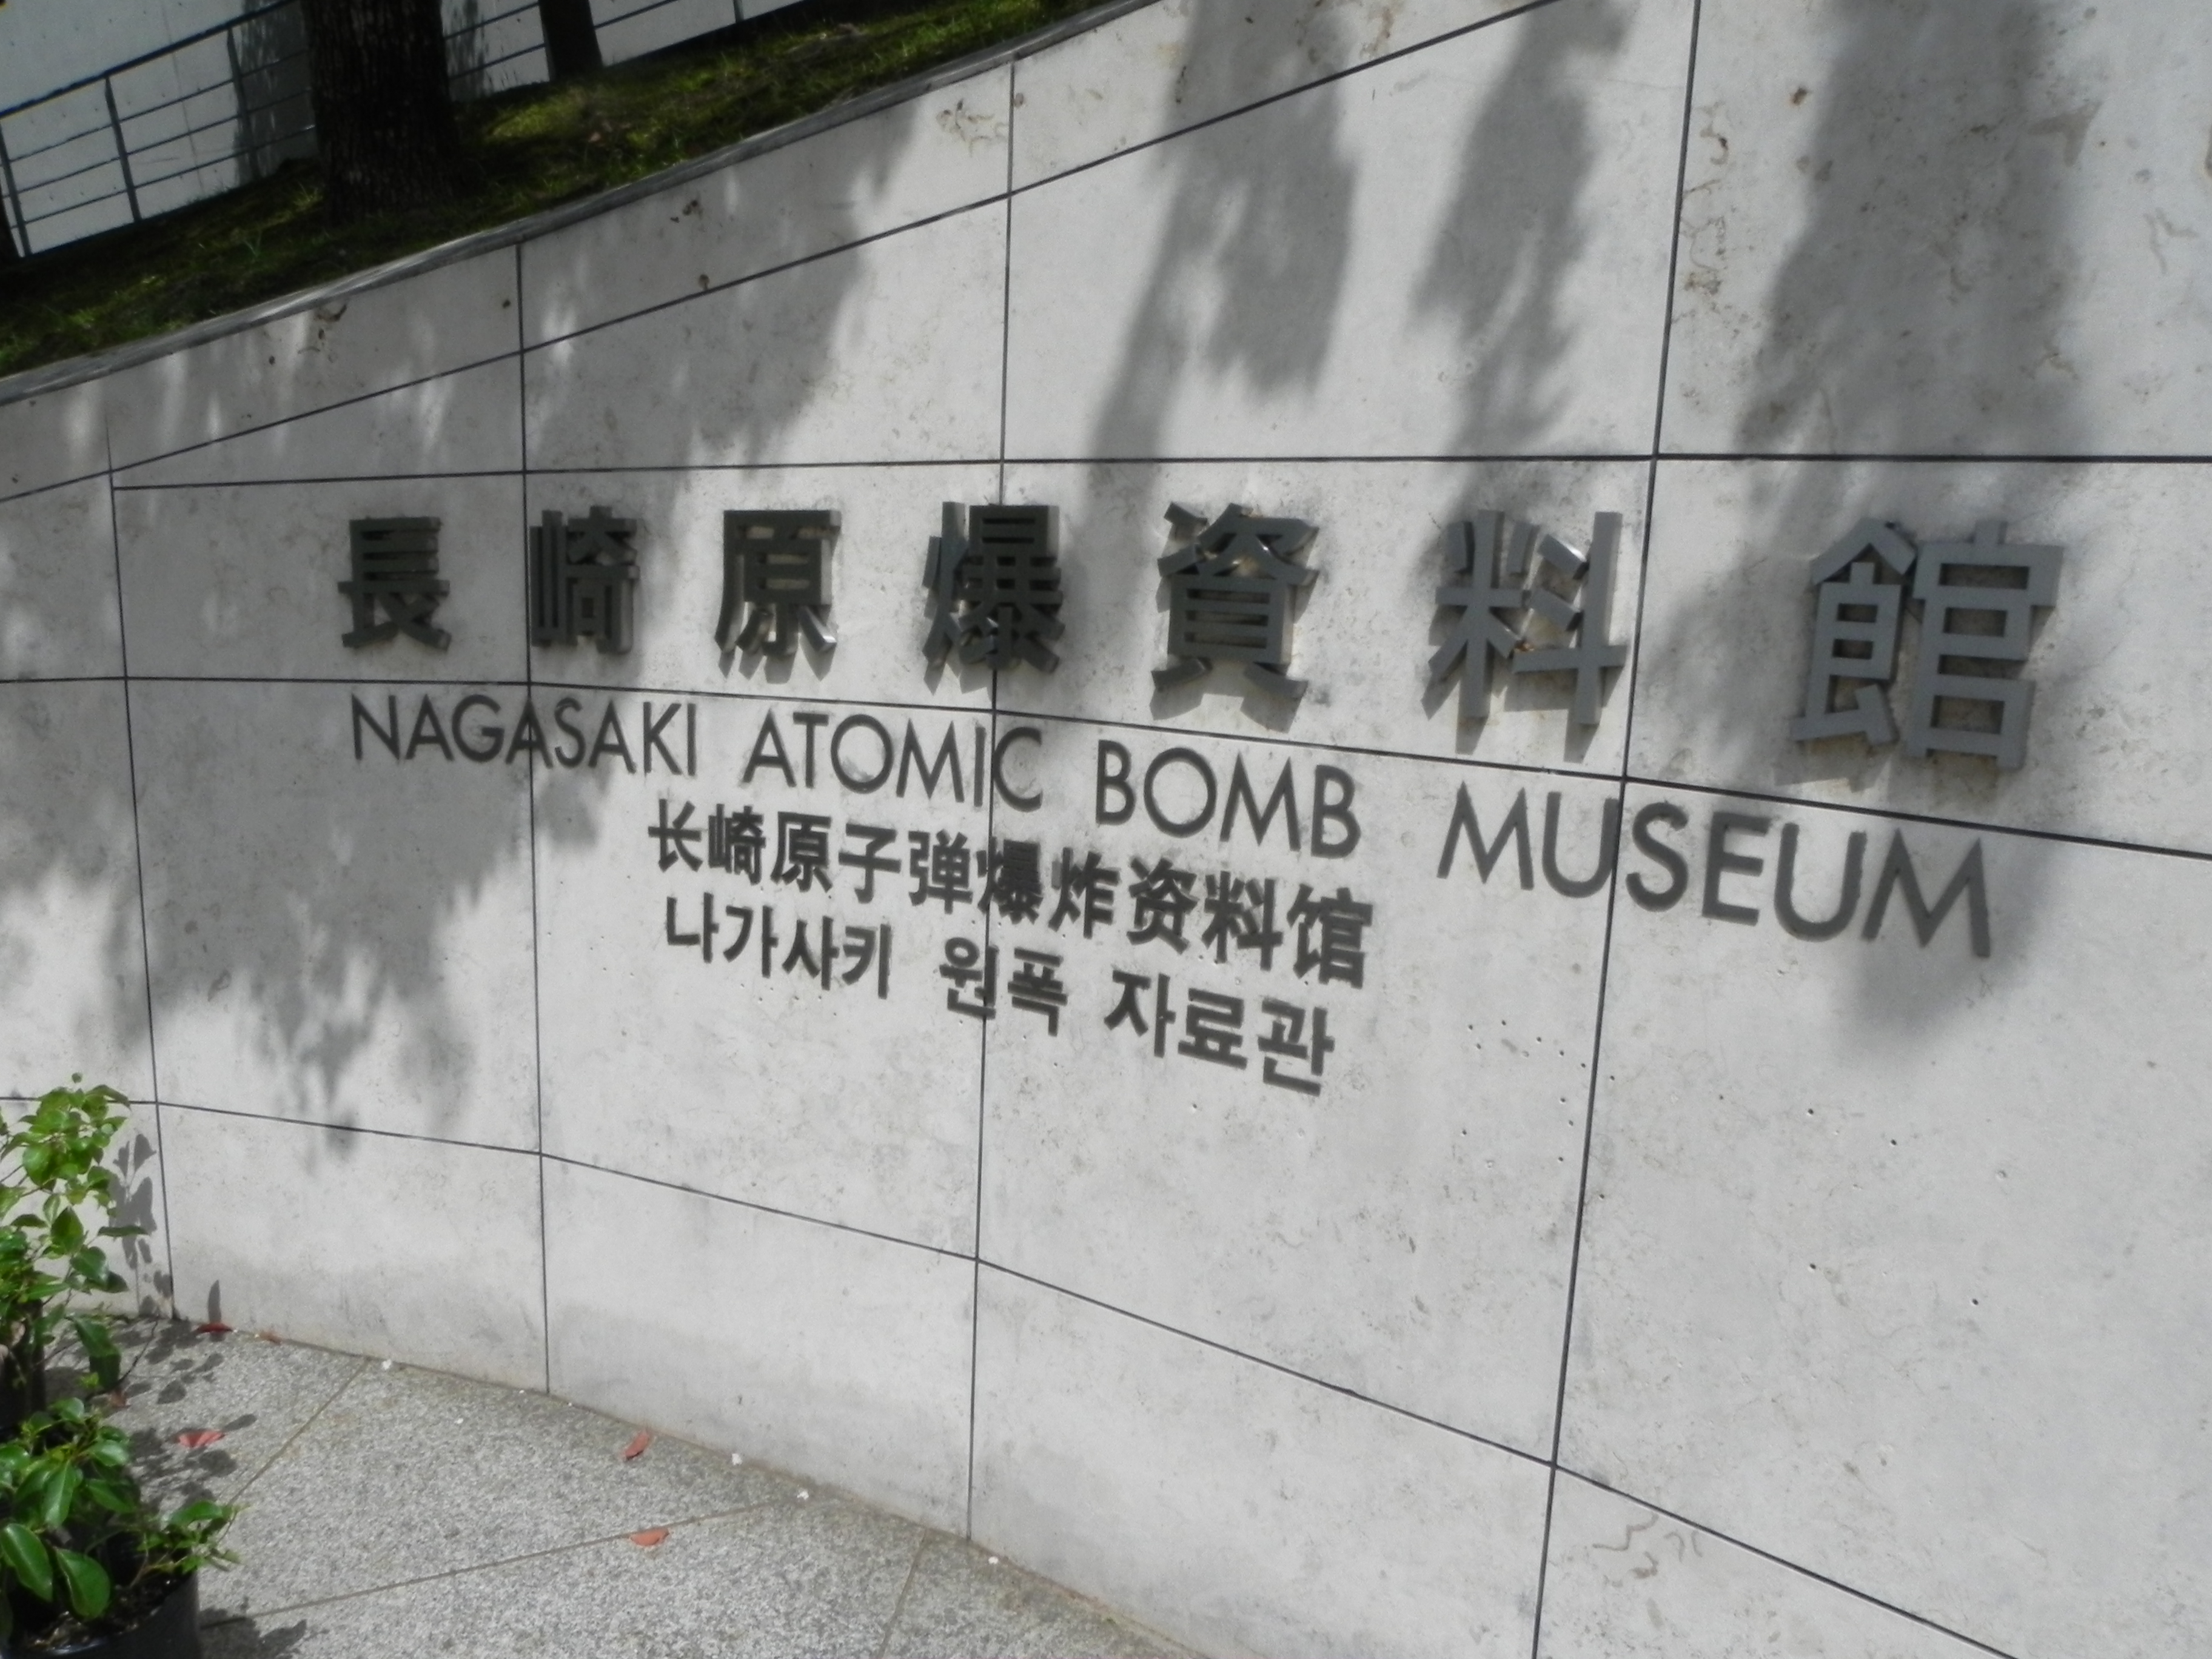 Shiroyama Elementary School Nagasaki, Nagasaki: How I Learned to Hate the Atomic Bomb | Freewheel Burning